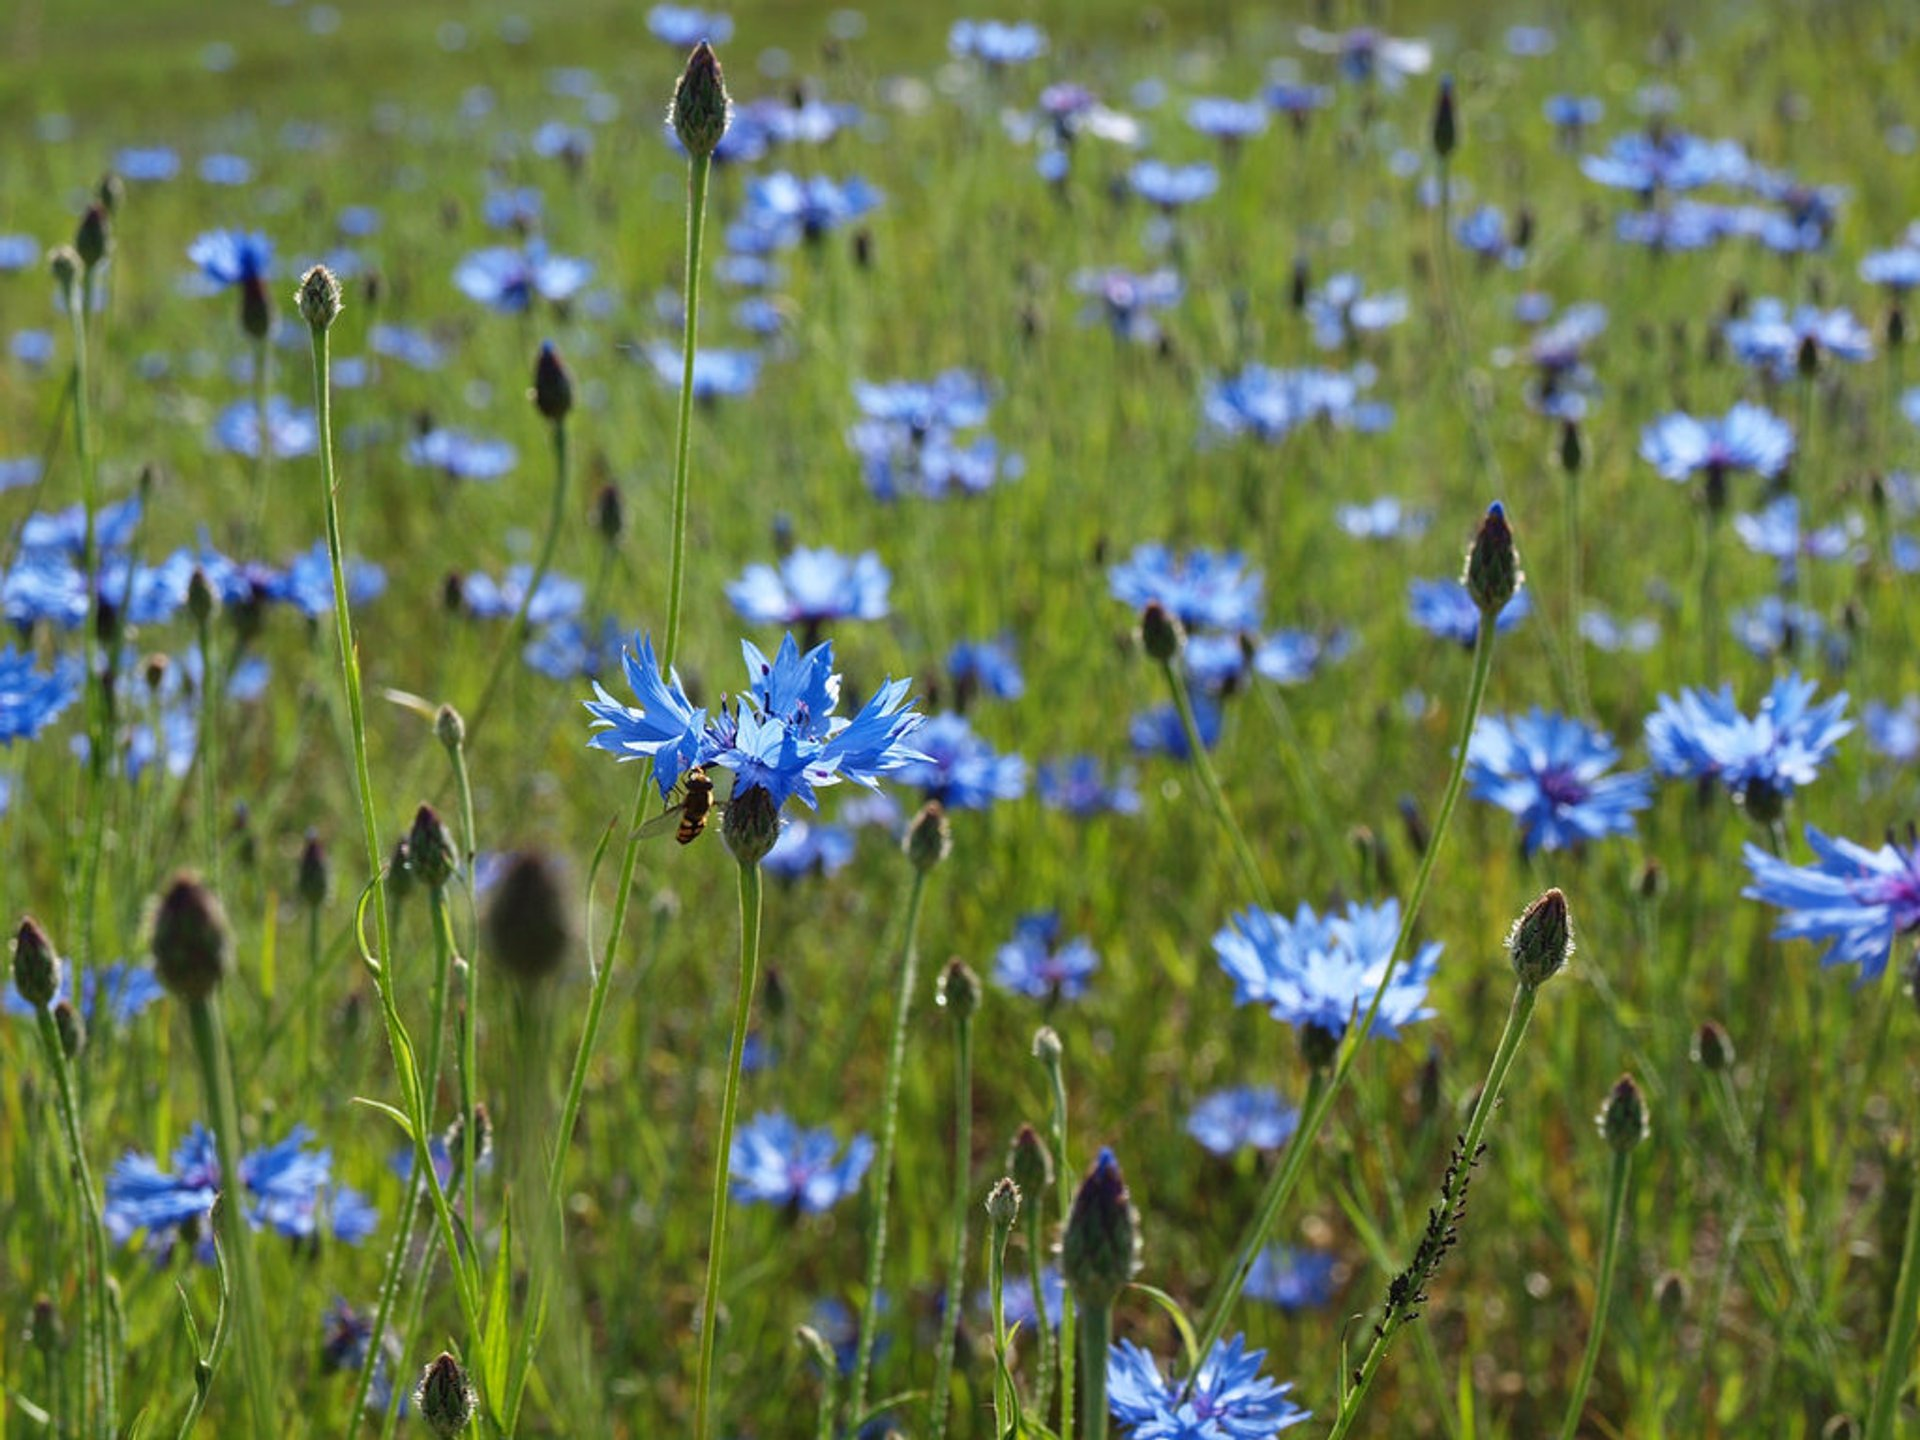 Blue Cornflower Bloom in Estonia 2020 - Best Time